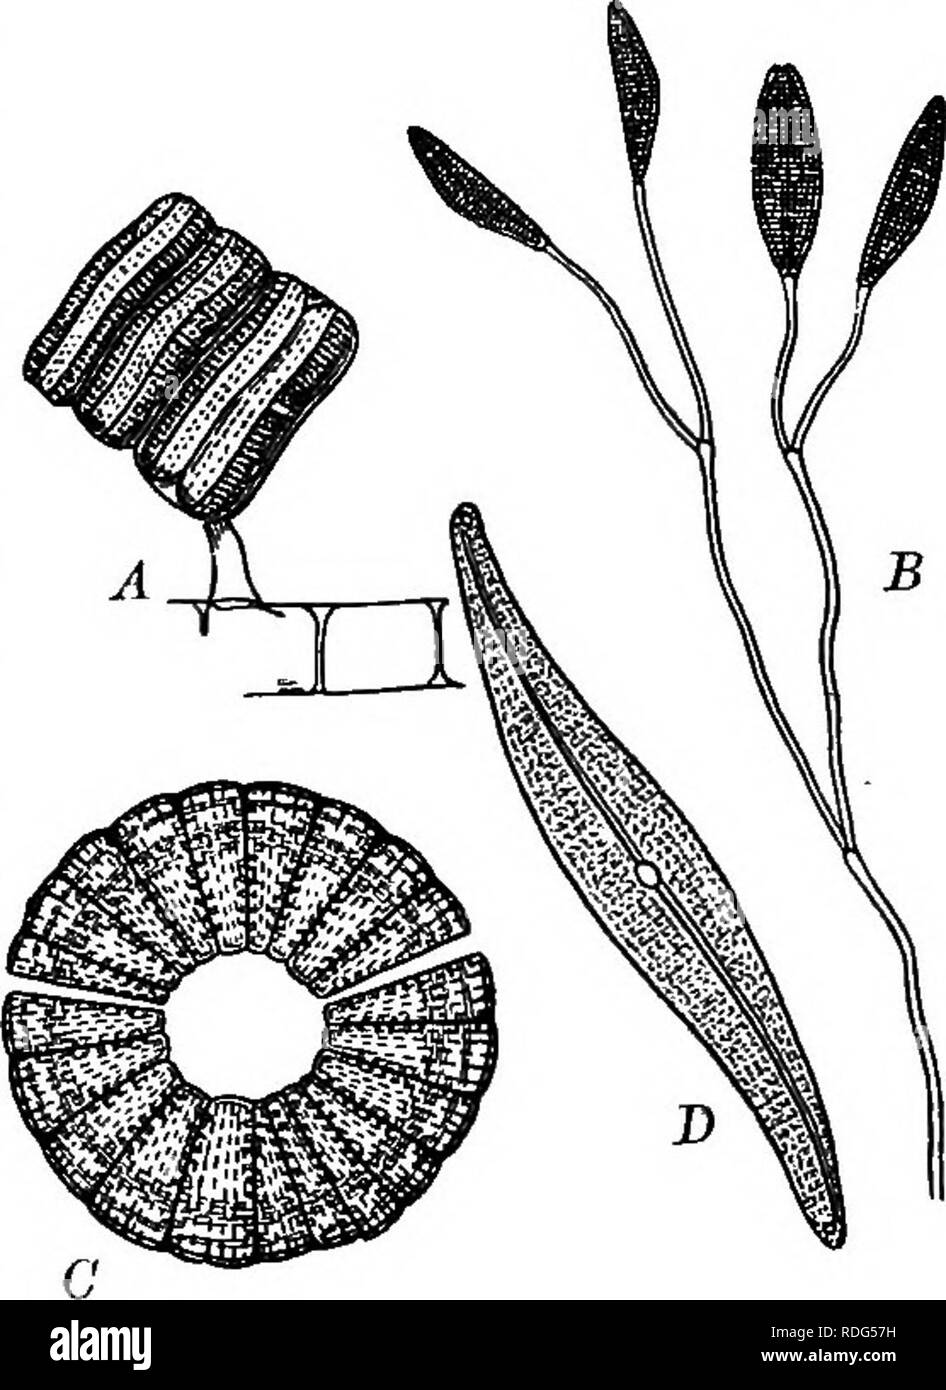 """. Foundations of botany. Botany; Botany. TYPES OF CRYPTOGAMS; THALLOPHYTES 241 in nitric acid, the cellulose wall and its contents may be destroyed and the markings of the siliceous shell more easily observed. Each diatom consists of a single cell. 272. Movements of Diatoms. — Living diatoms exhibit a peculiar power of movement. In the boat-shaped species the movement is much like that of a row-boat, forward or backward. THE STUDY OF SPIROGYRA 273. Occurrence. — Spirogyra, one of the plants commonly known as pond-scum, or «frog-spit,"""" occurs widely distributed throughout the country in po Stock Photo"""